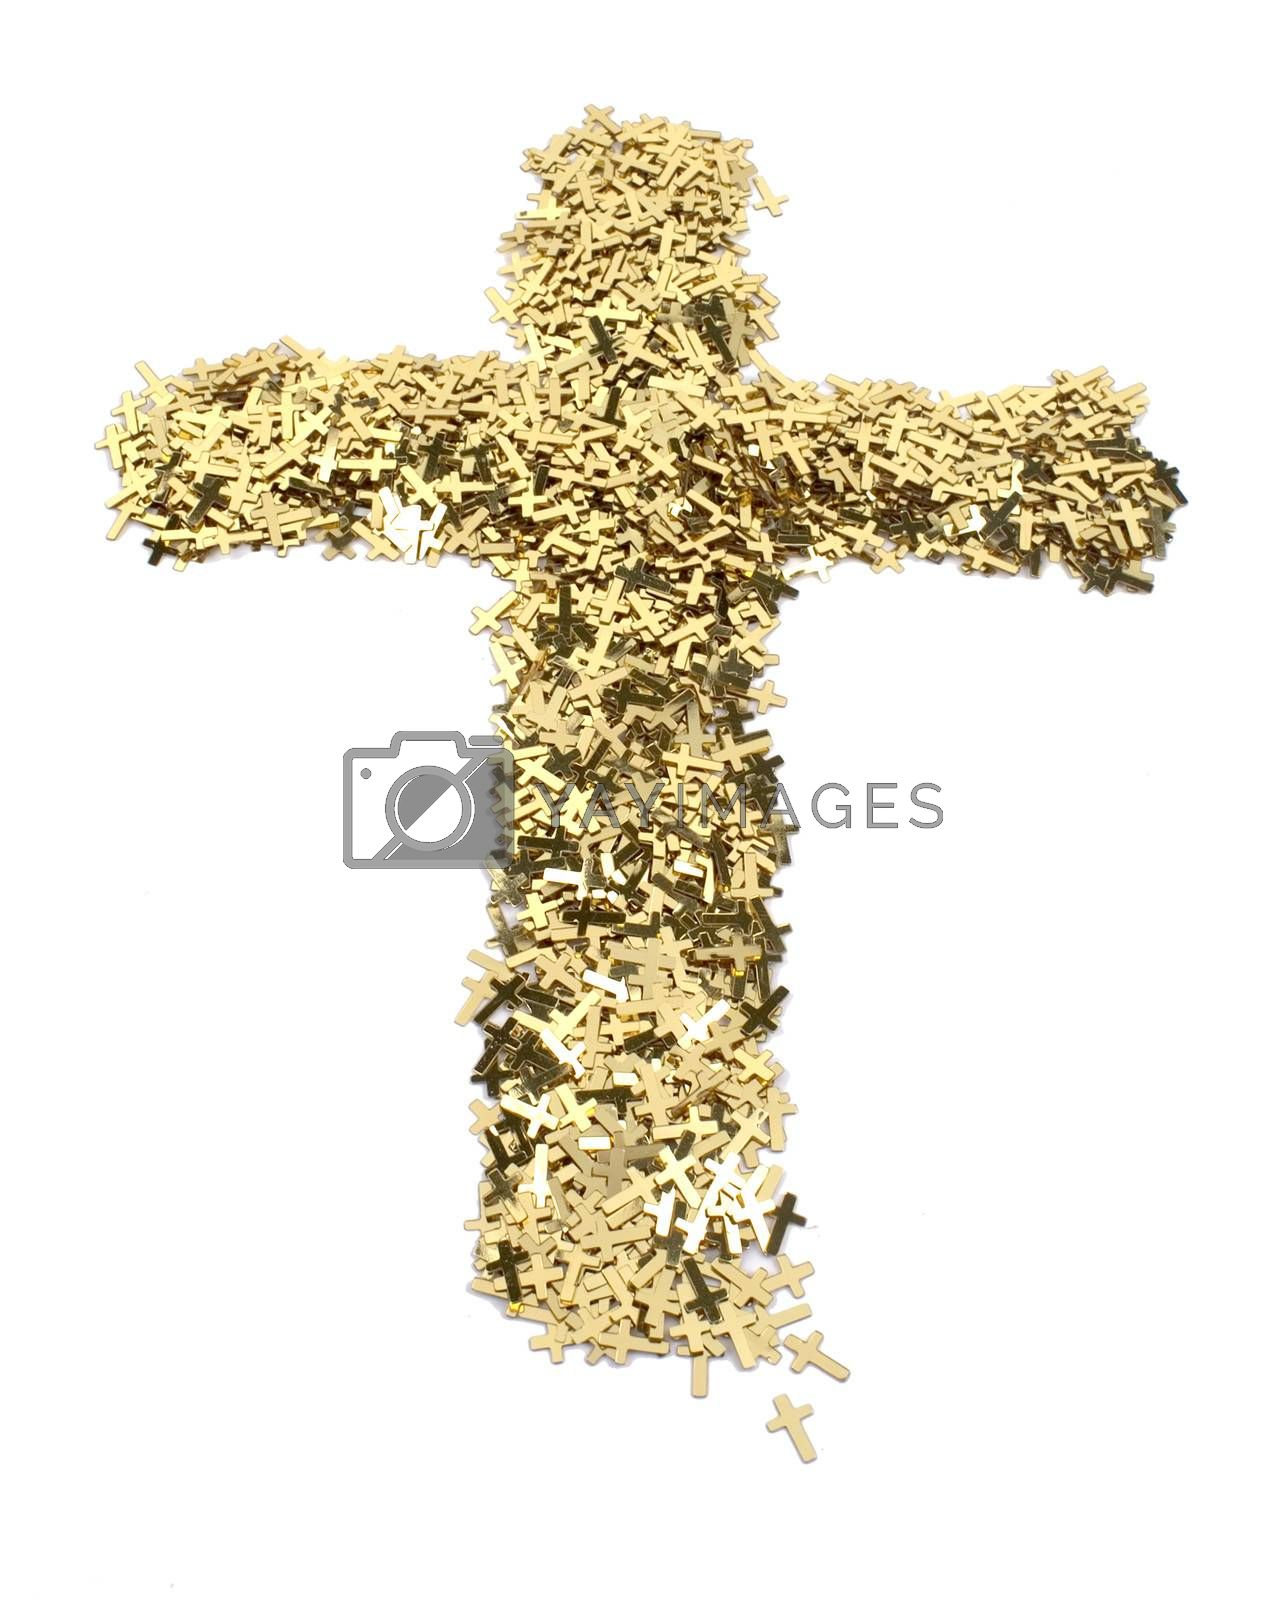 Royalty free image of Golden Cross by mothy20